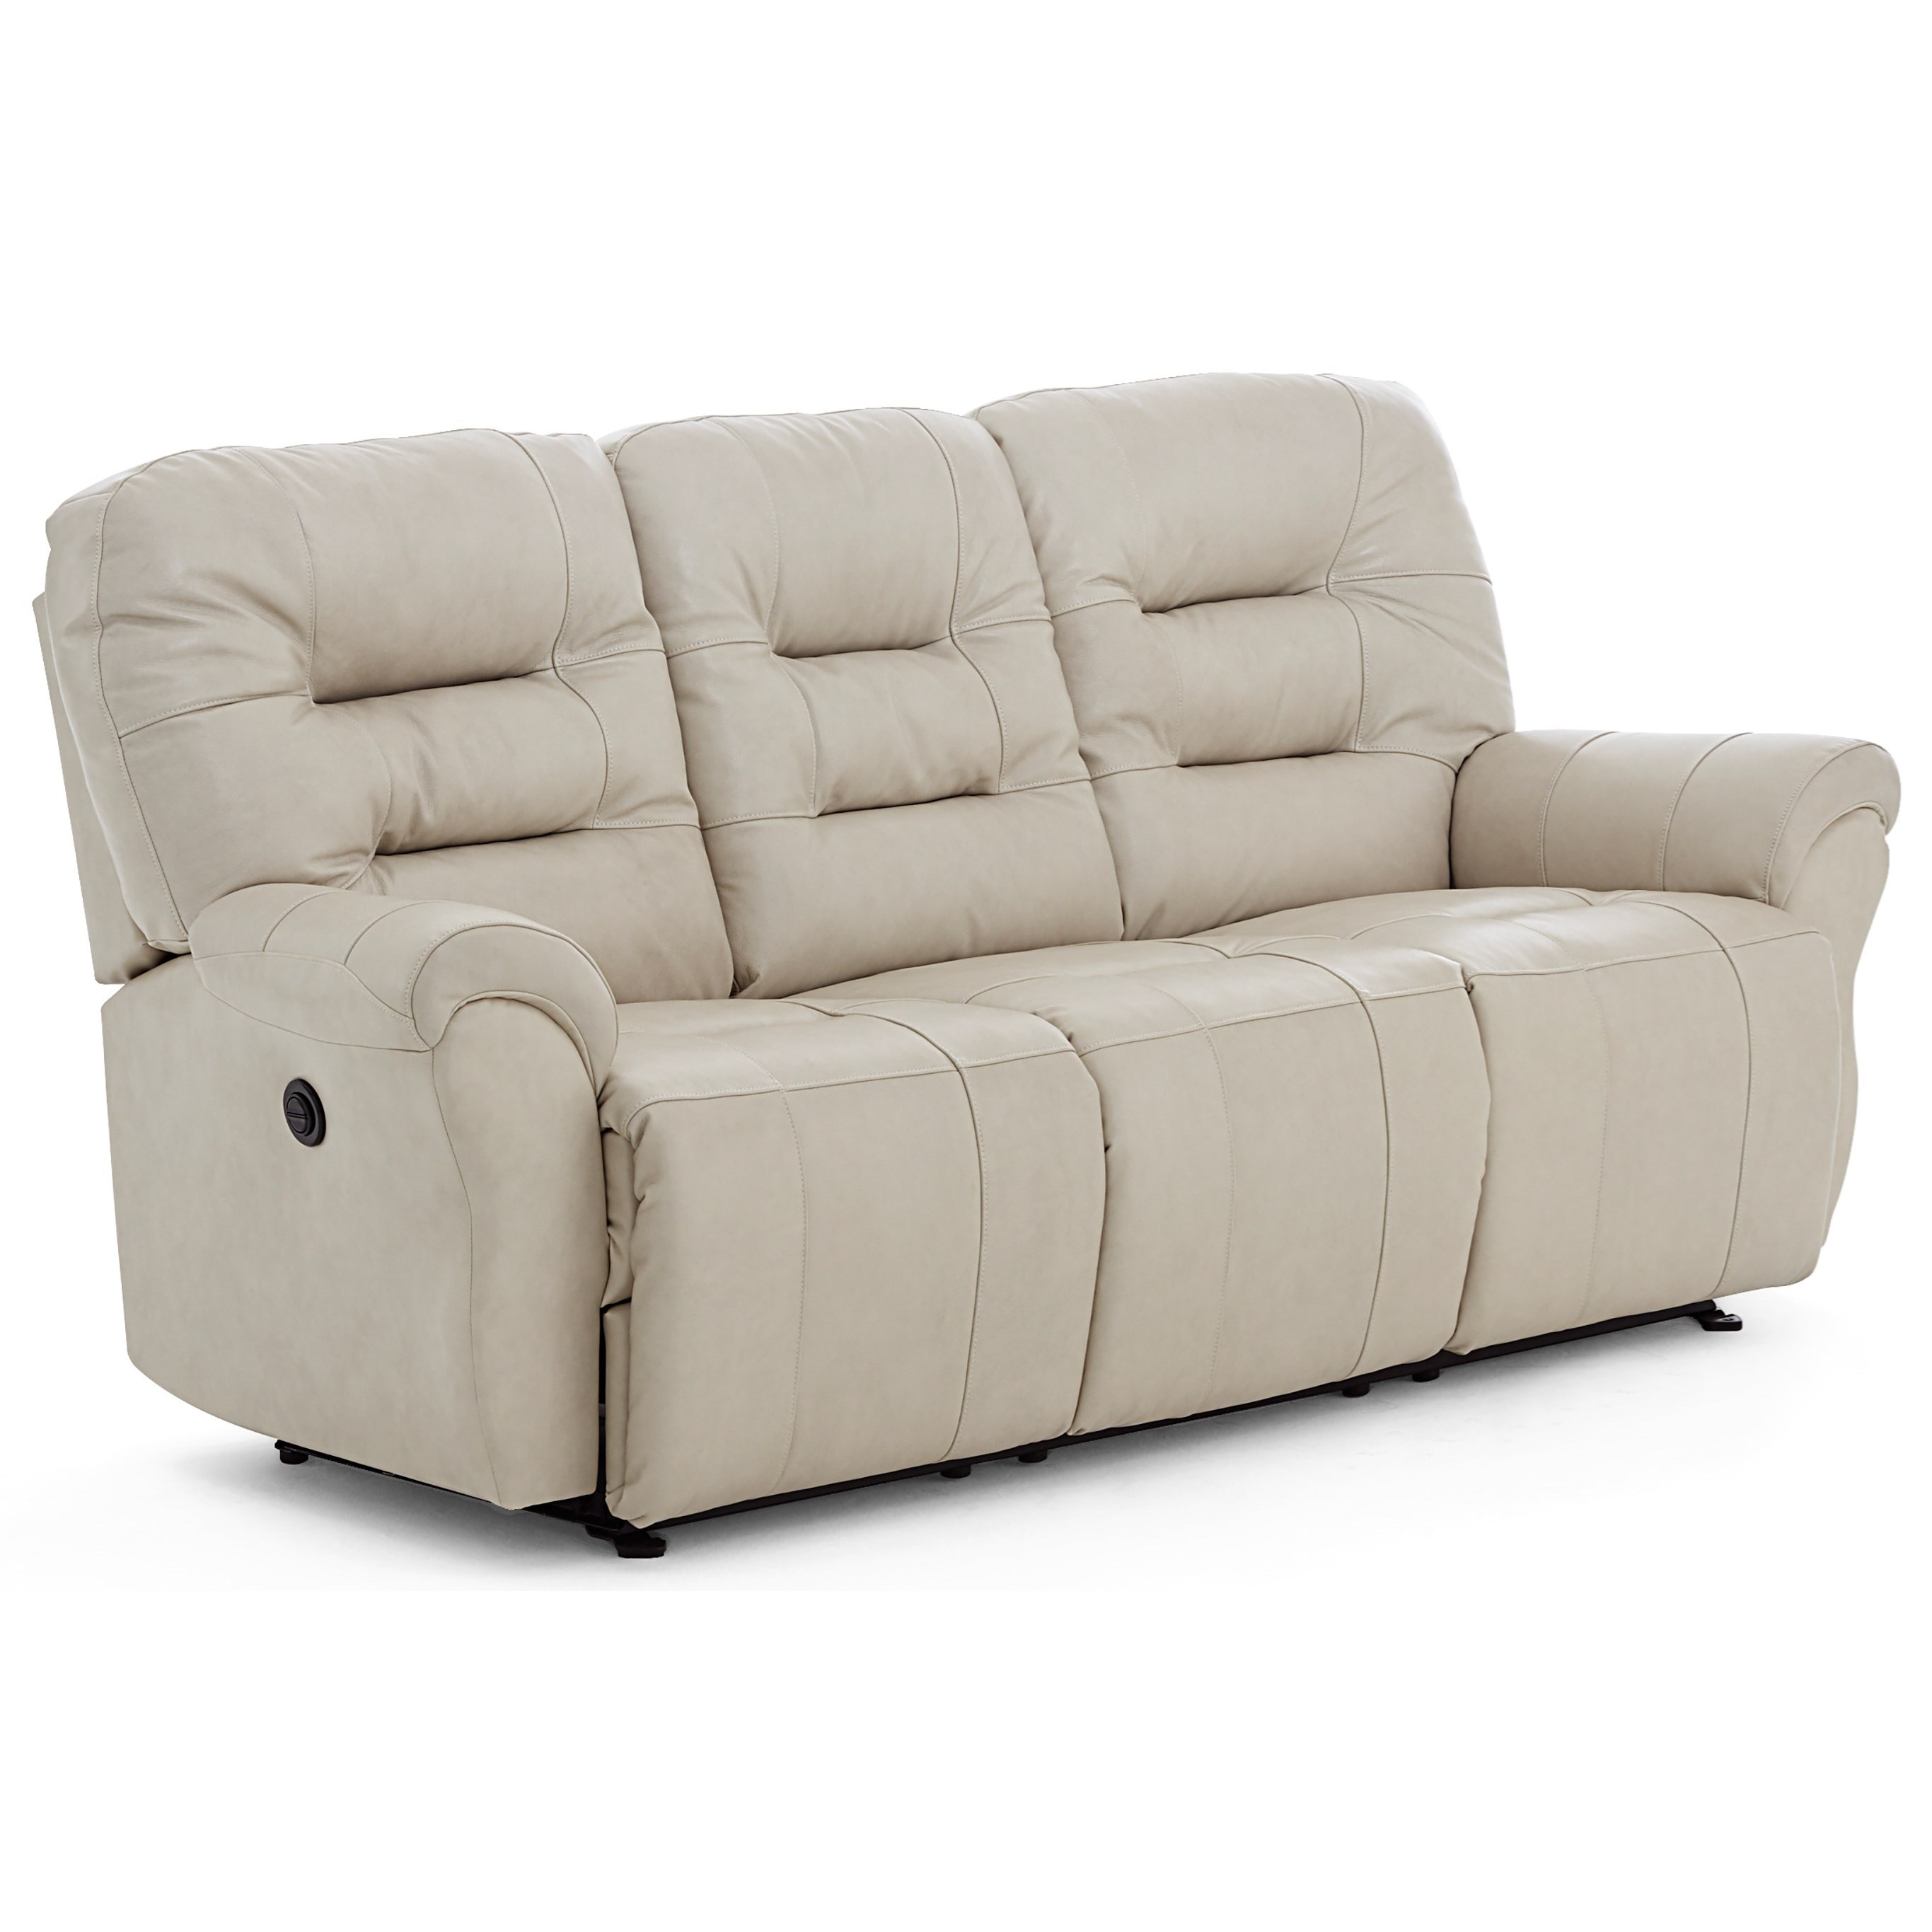 Space Saver Sofa Chaise